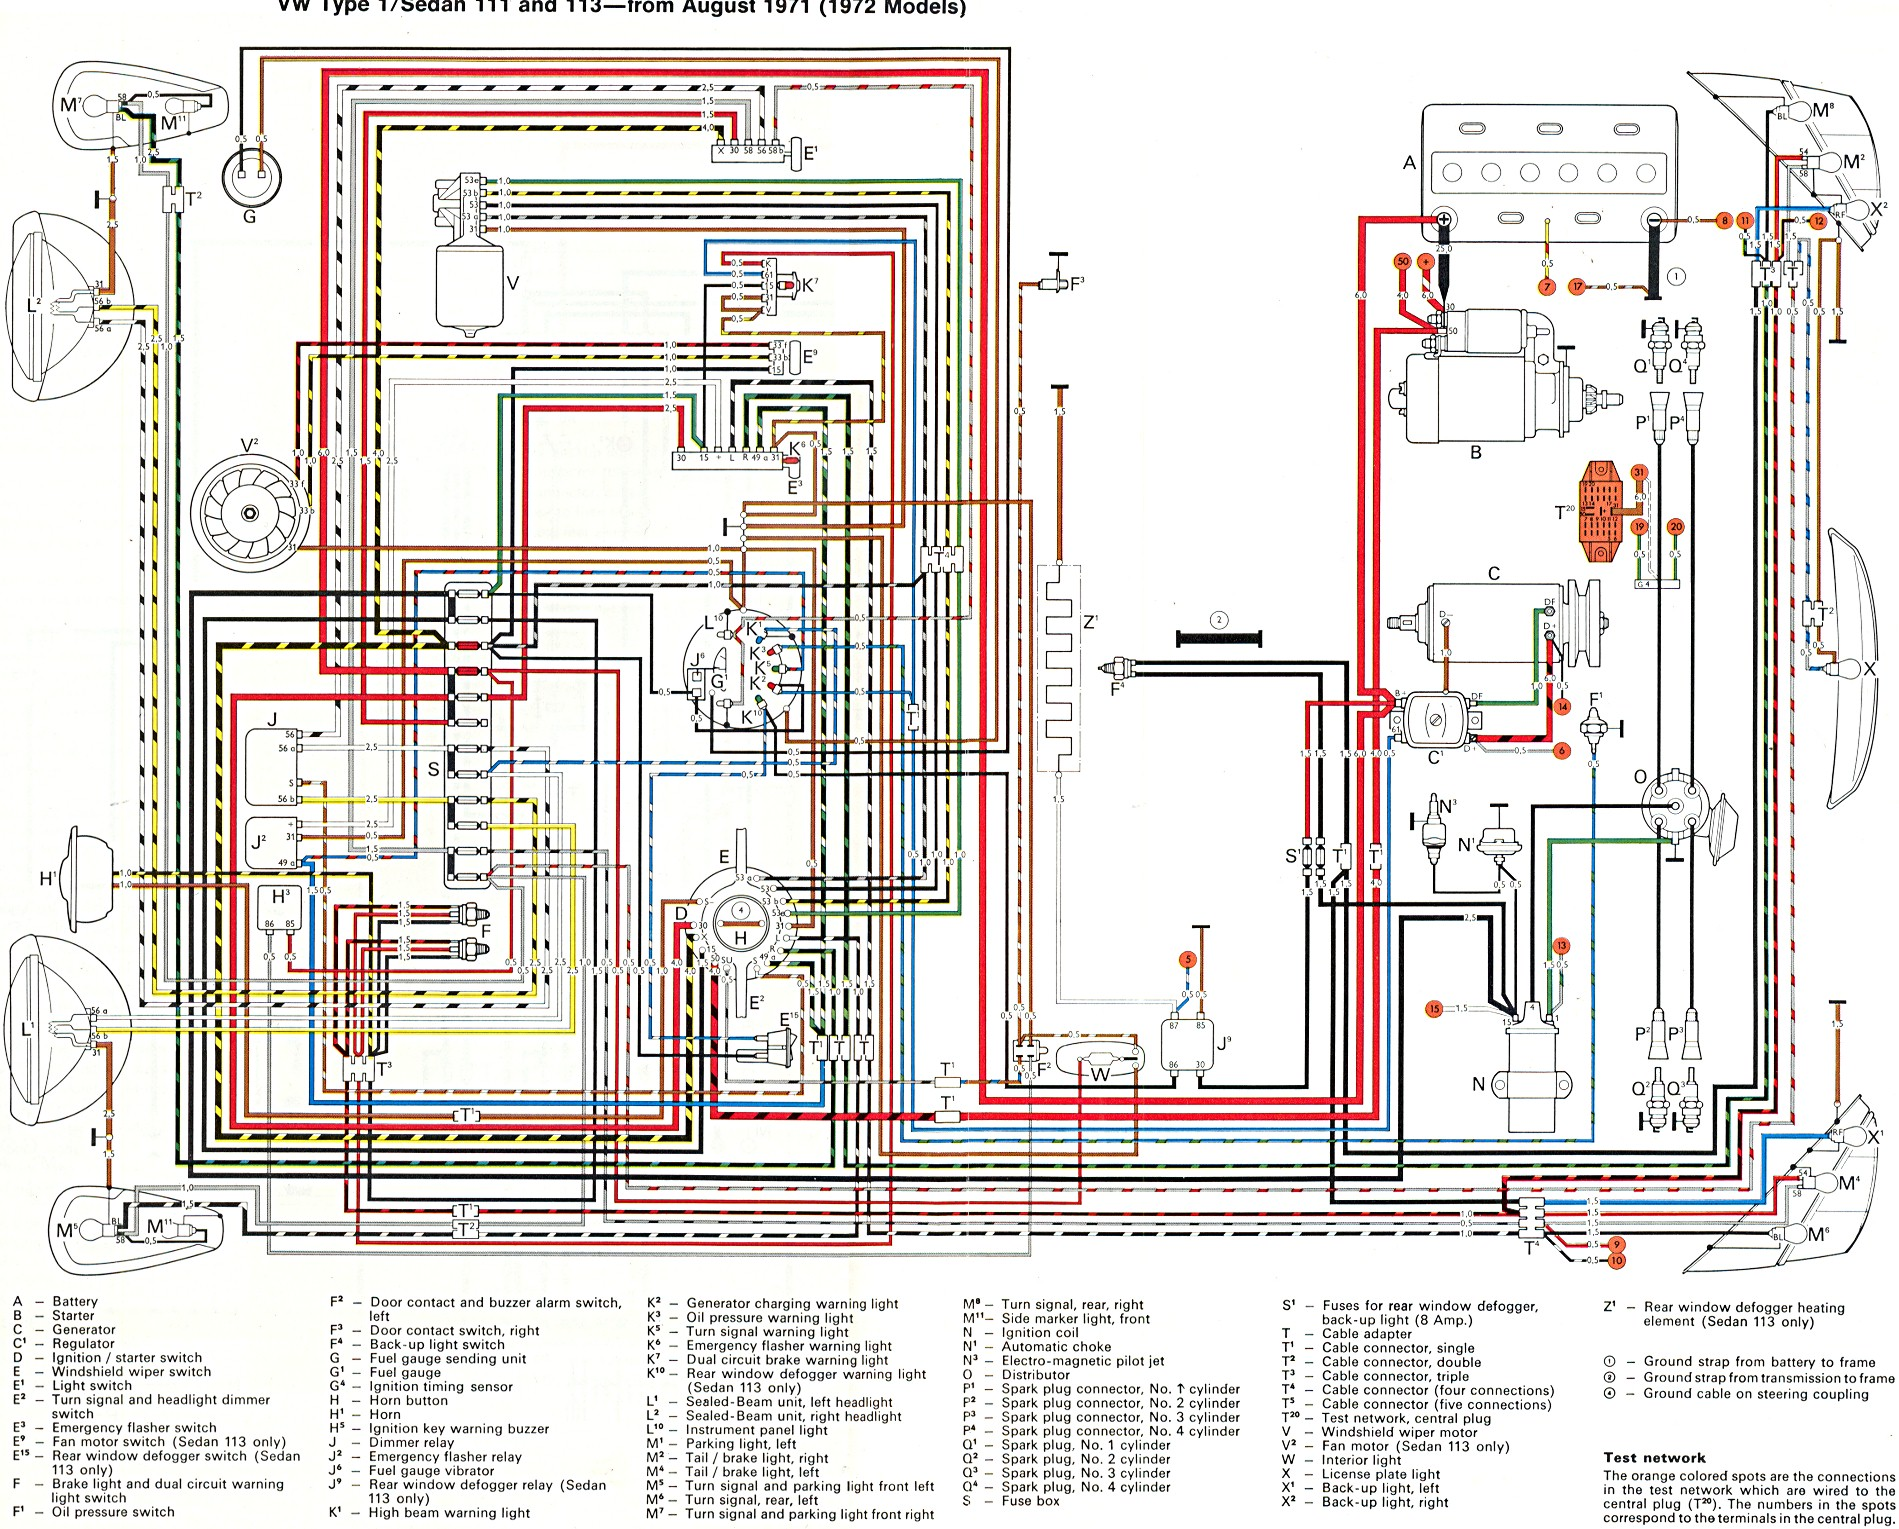 72 Vw Bus Engine Diagram on 1967 vw beetle engine diagram